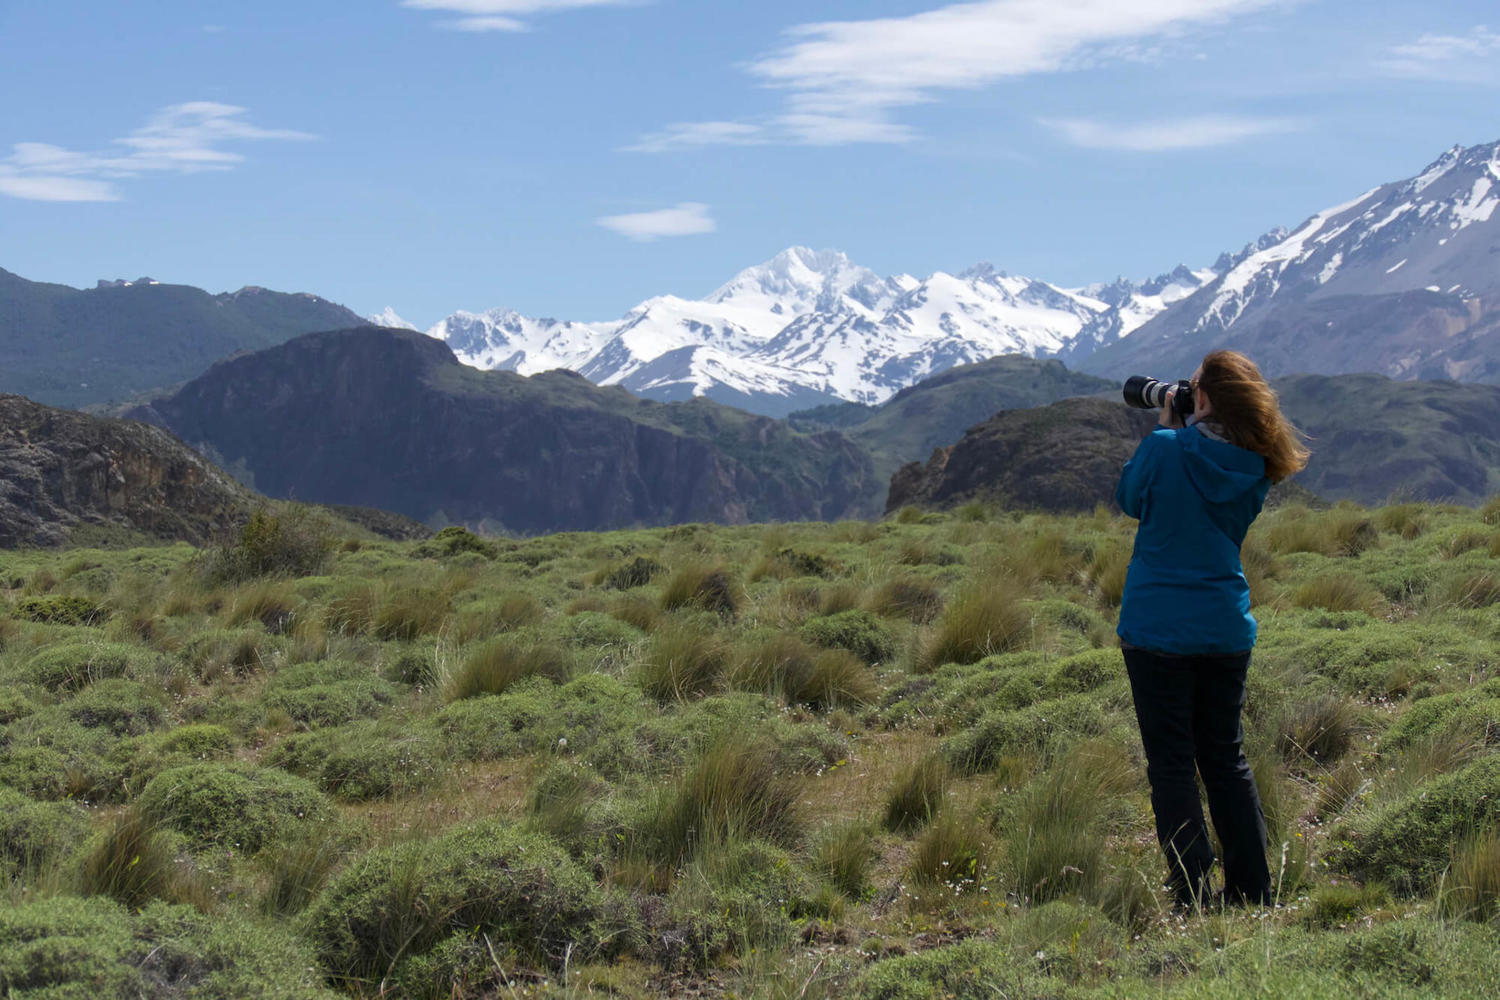 Photographing the landscapes of Parque Patagonia